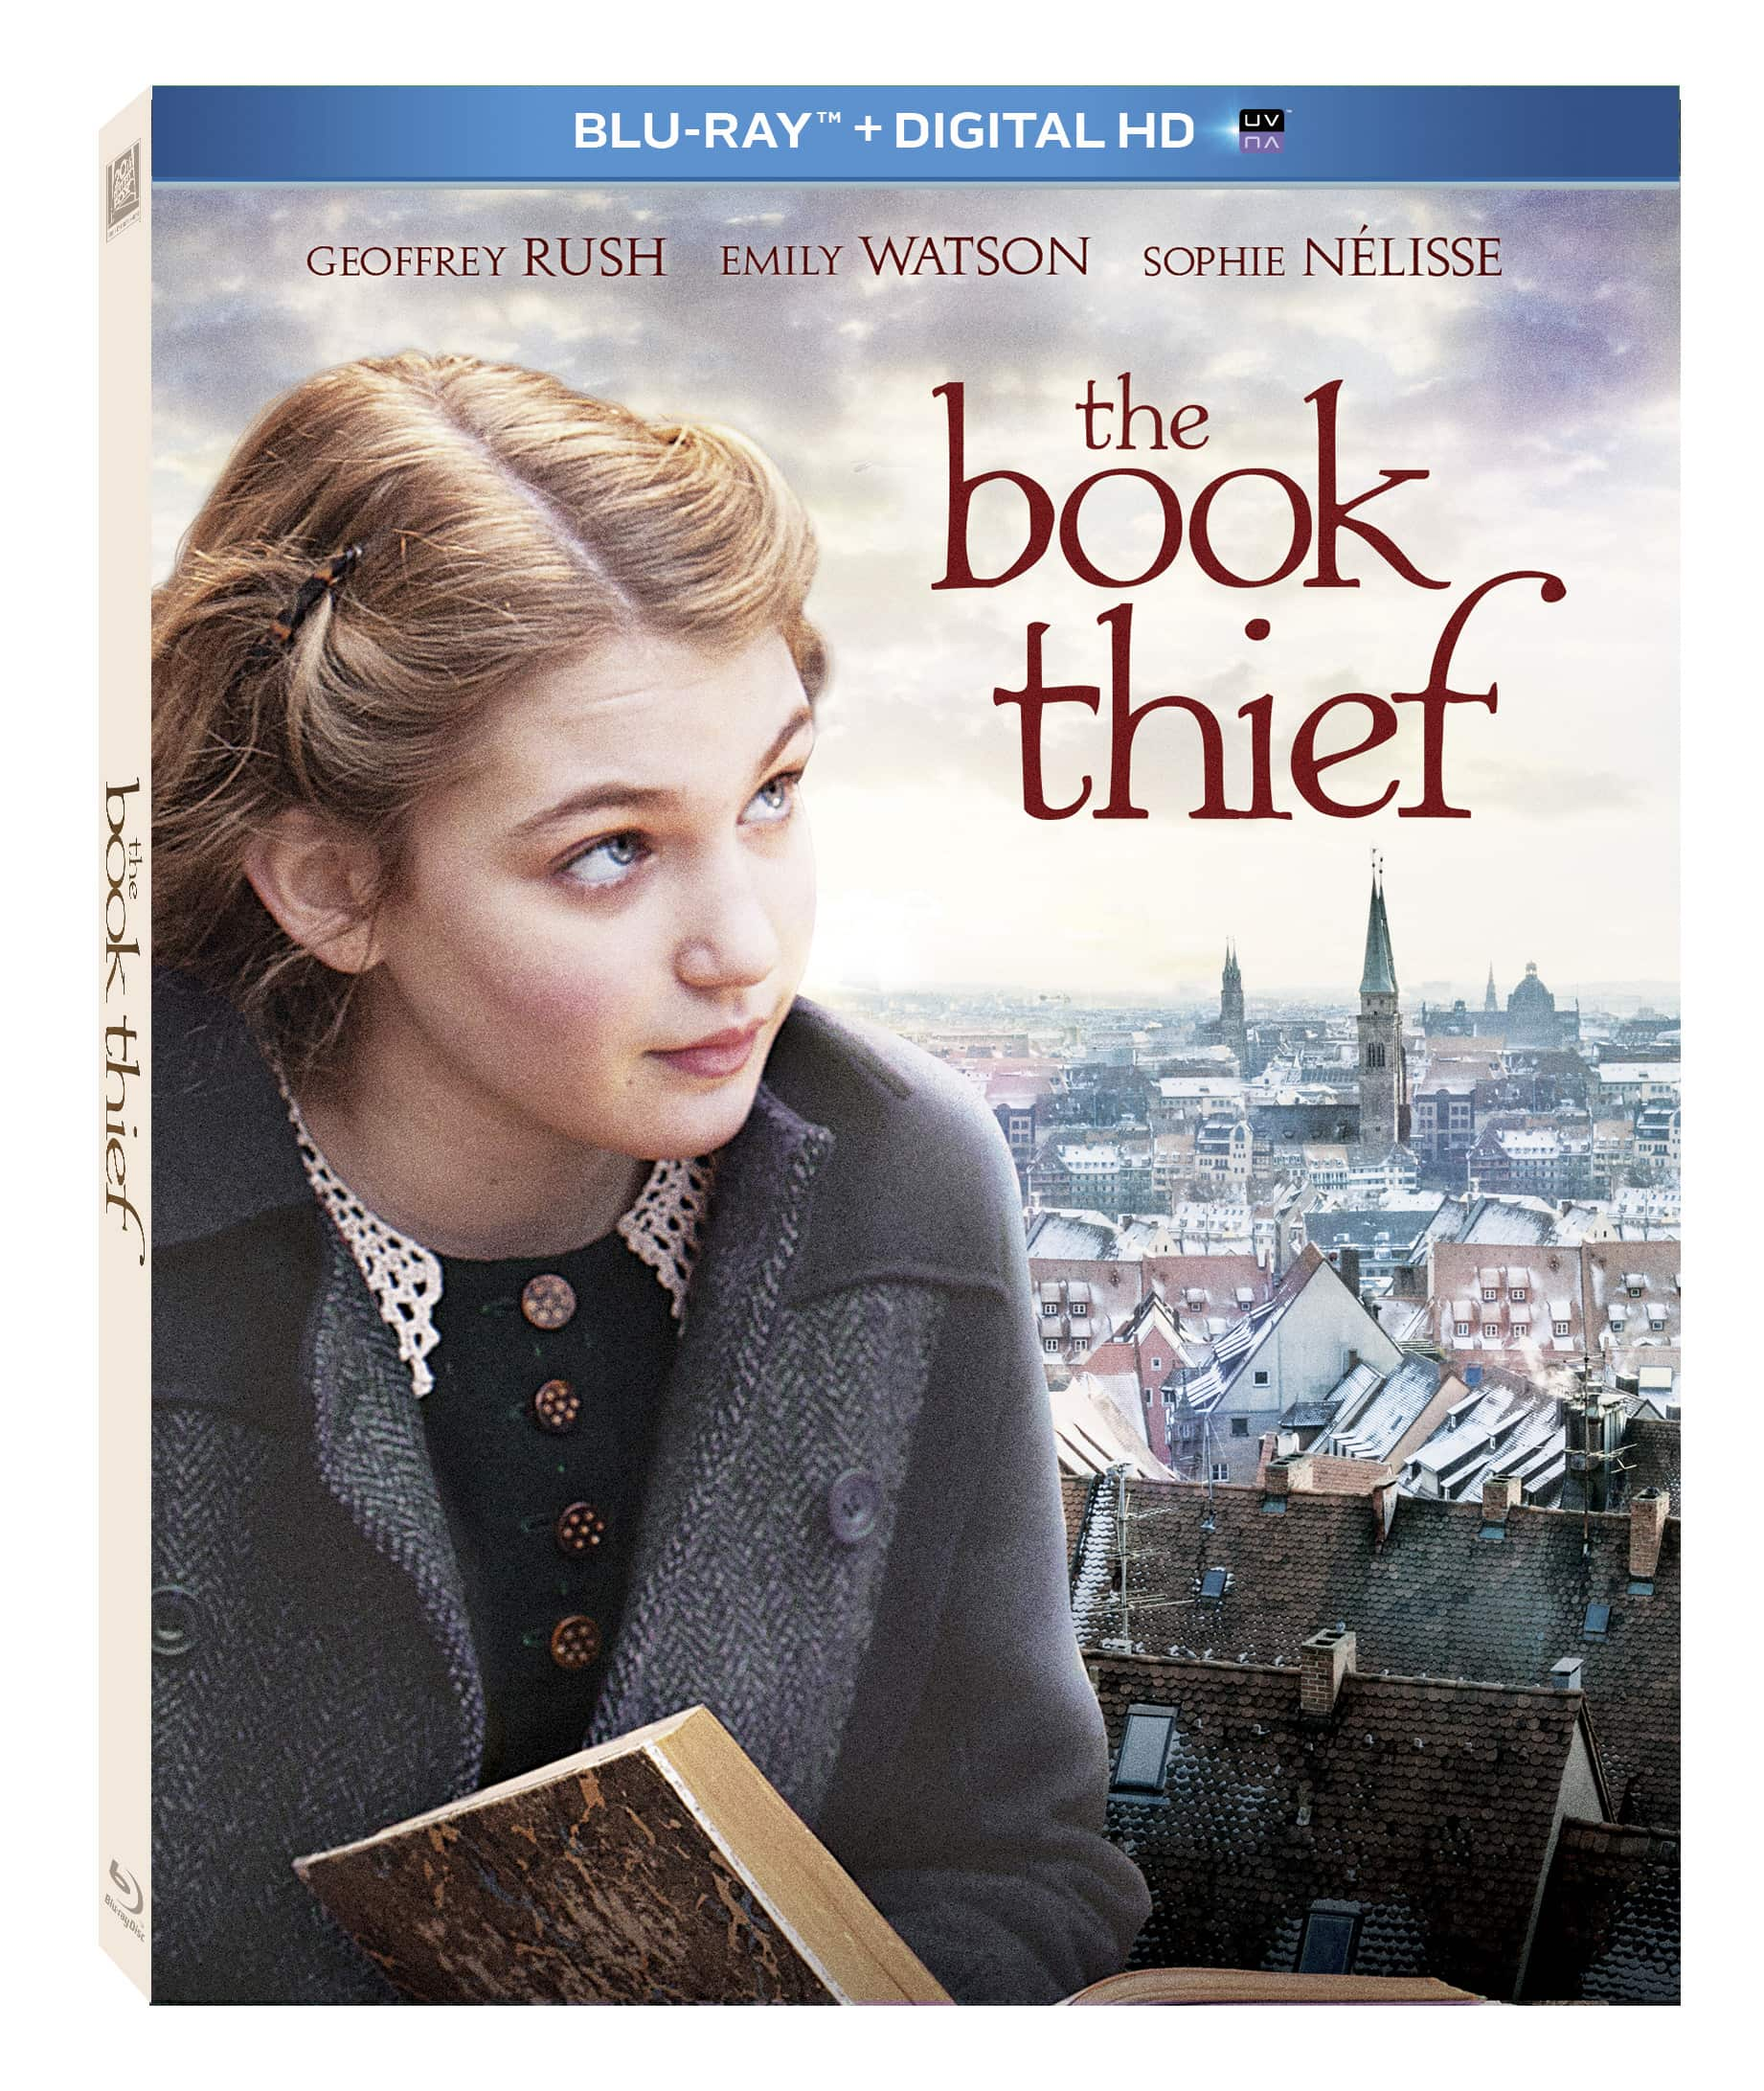 The Book Thief Movie is Now Available